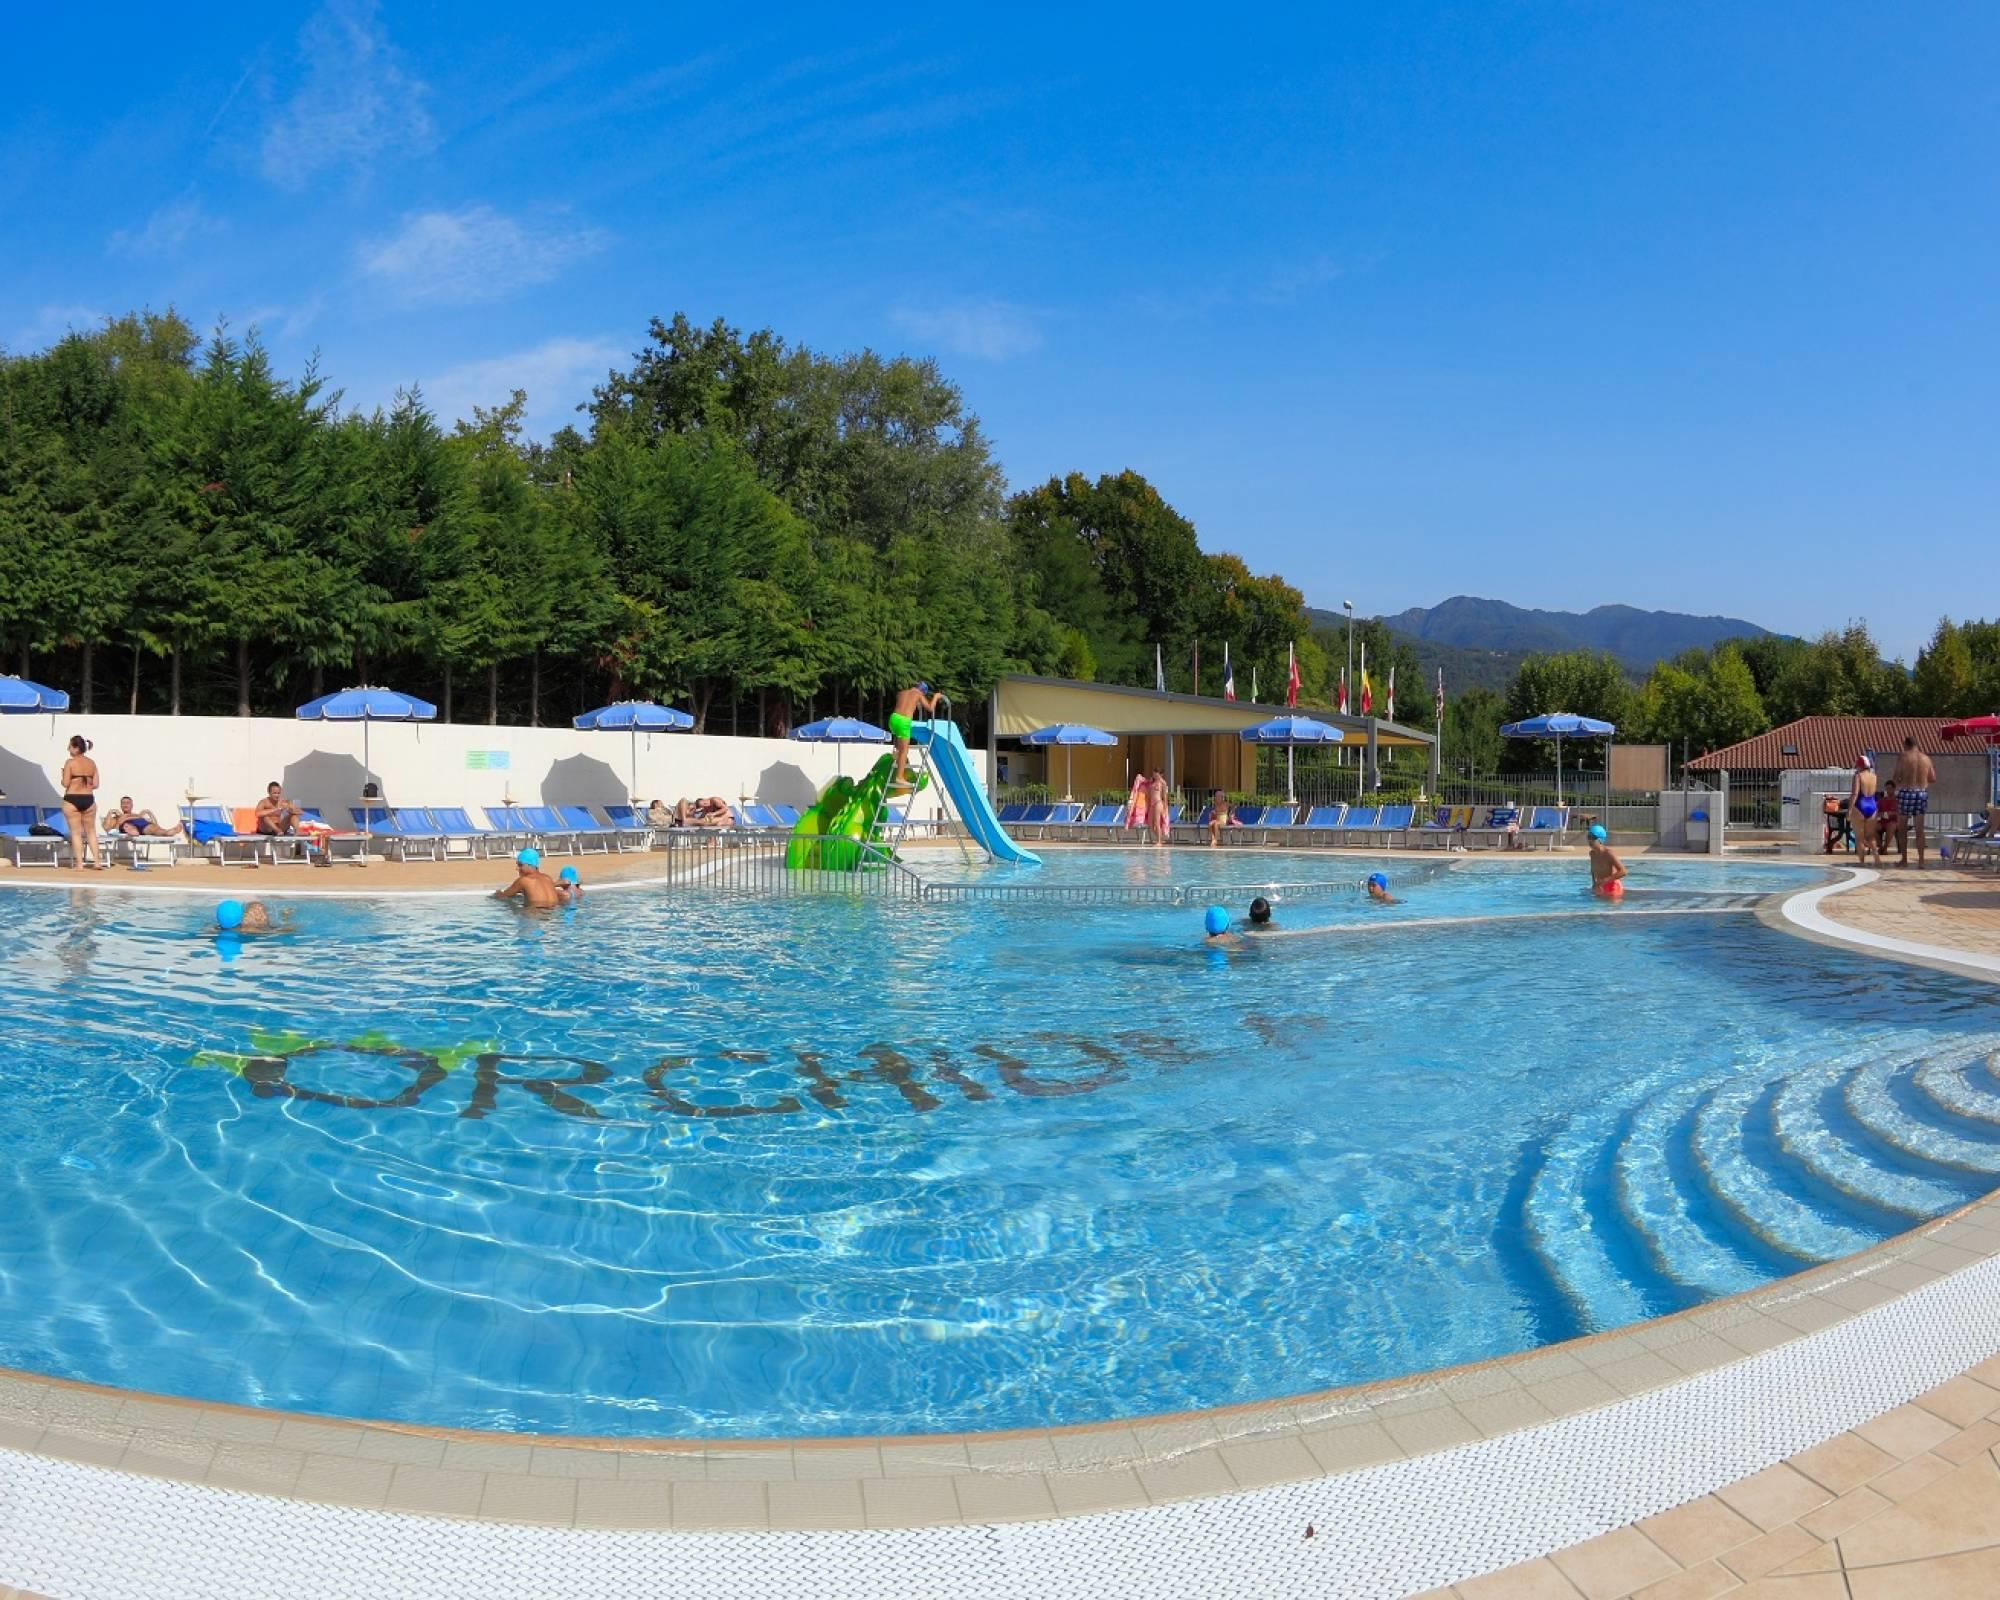 Establishment Camping Orchidea - Feriolo Di Baveno